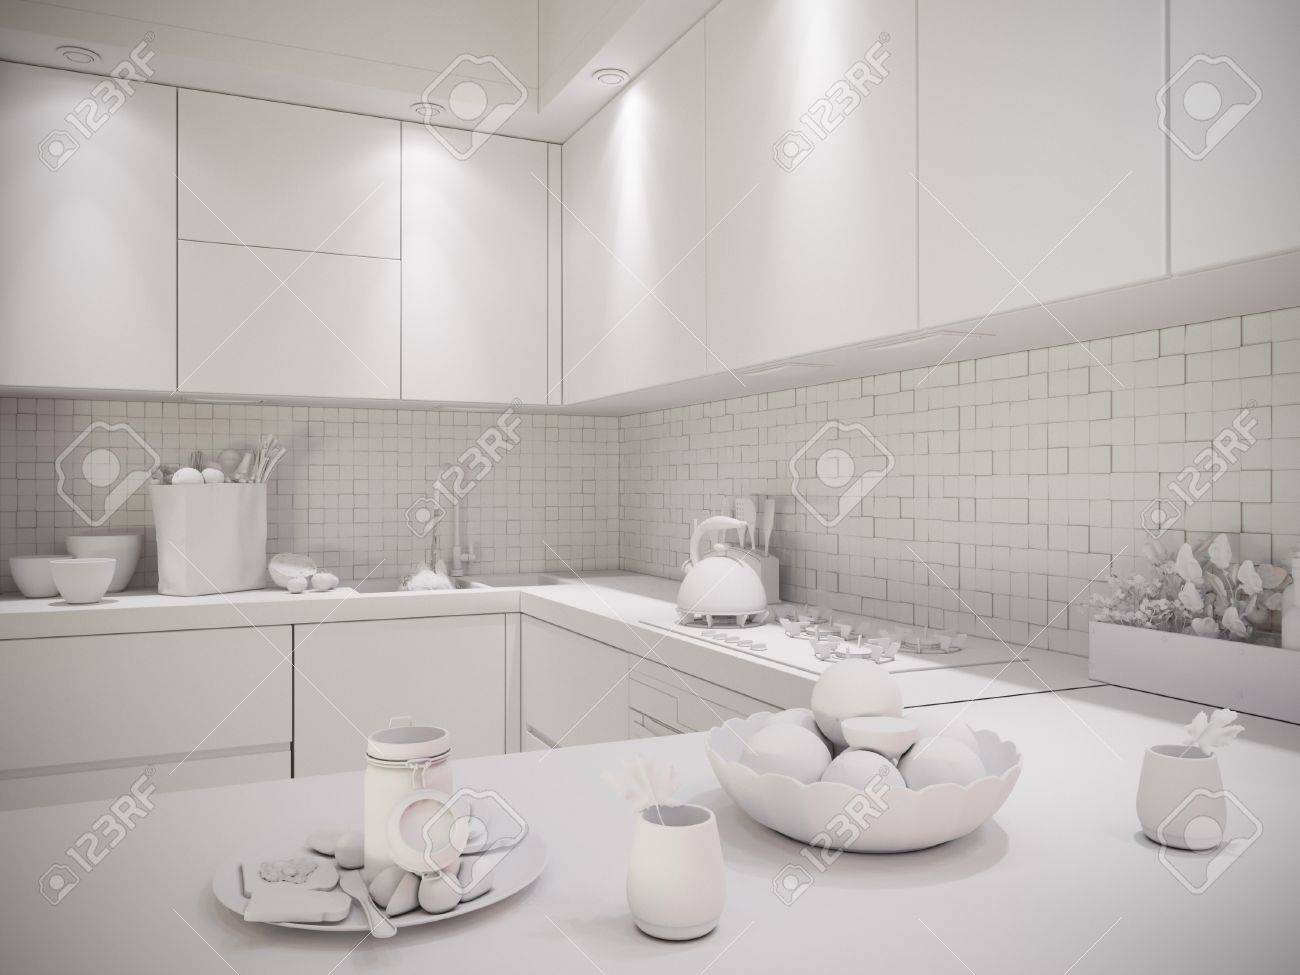 3d Illustration Of A Townhouse Interior Design Kitchen In A Modern on townhouse condo, townhouse floor plans, townhouse with garage, townhouse stoop, townhouse construction, townhouse elevations, townhouse rentals, townhouse living, townhouse from inside,